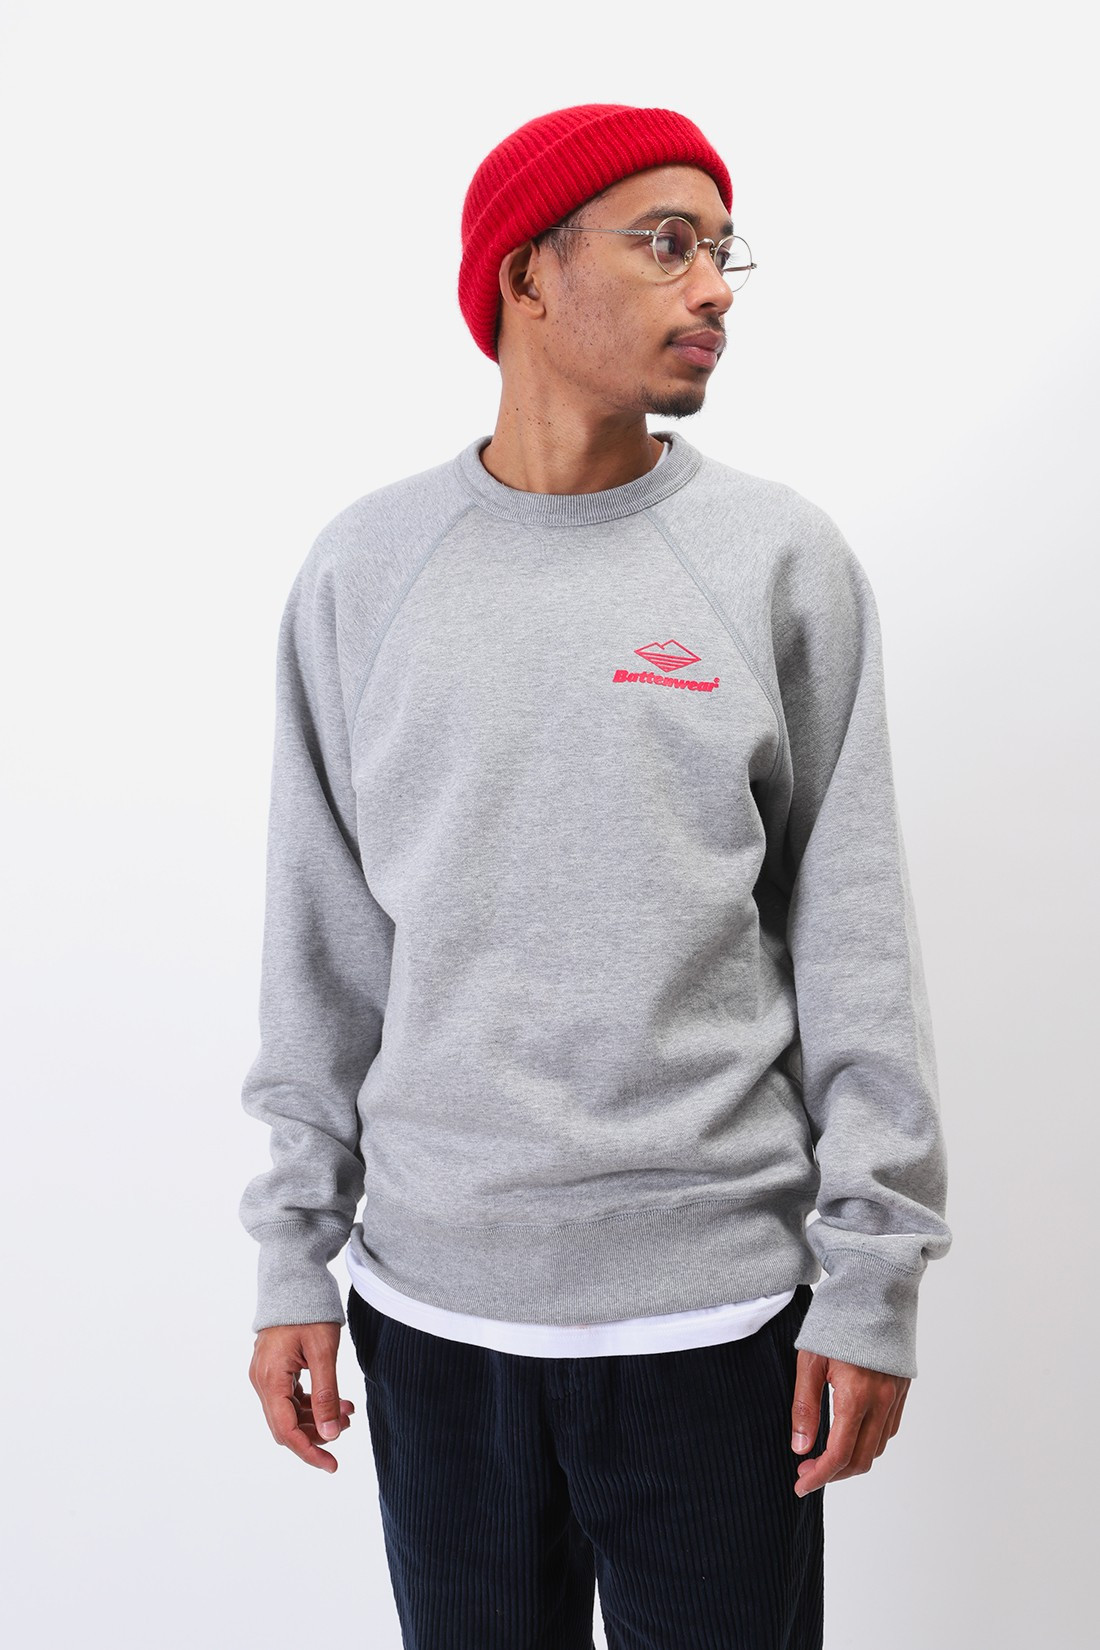 BATTENWEAR / Team reach up sweatshirt Heather grey